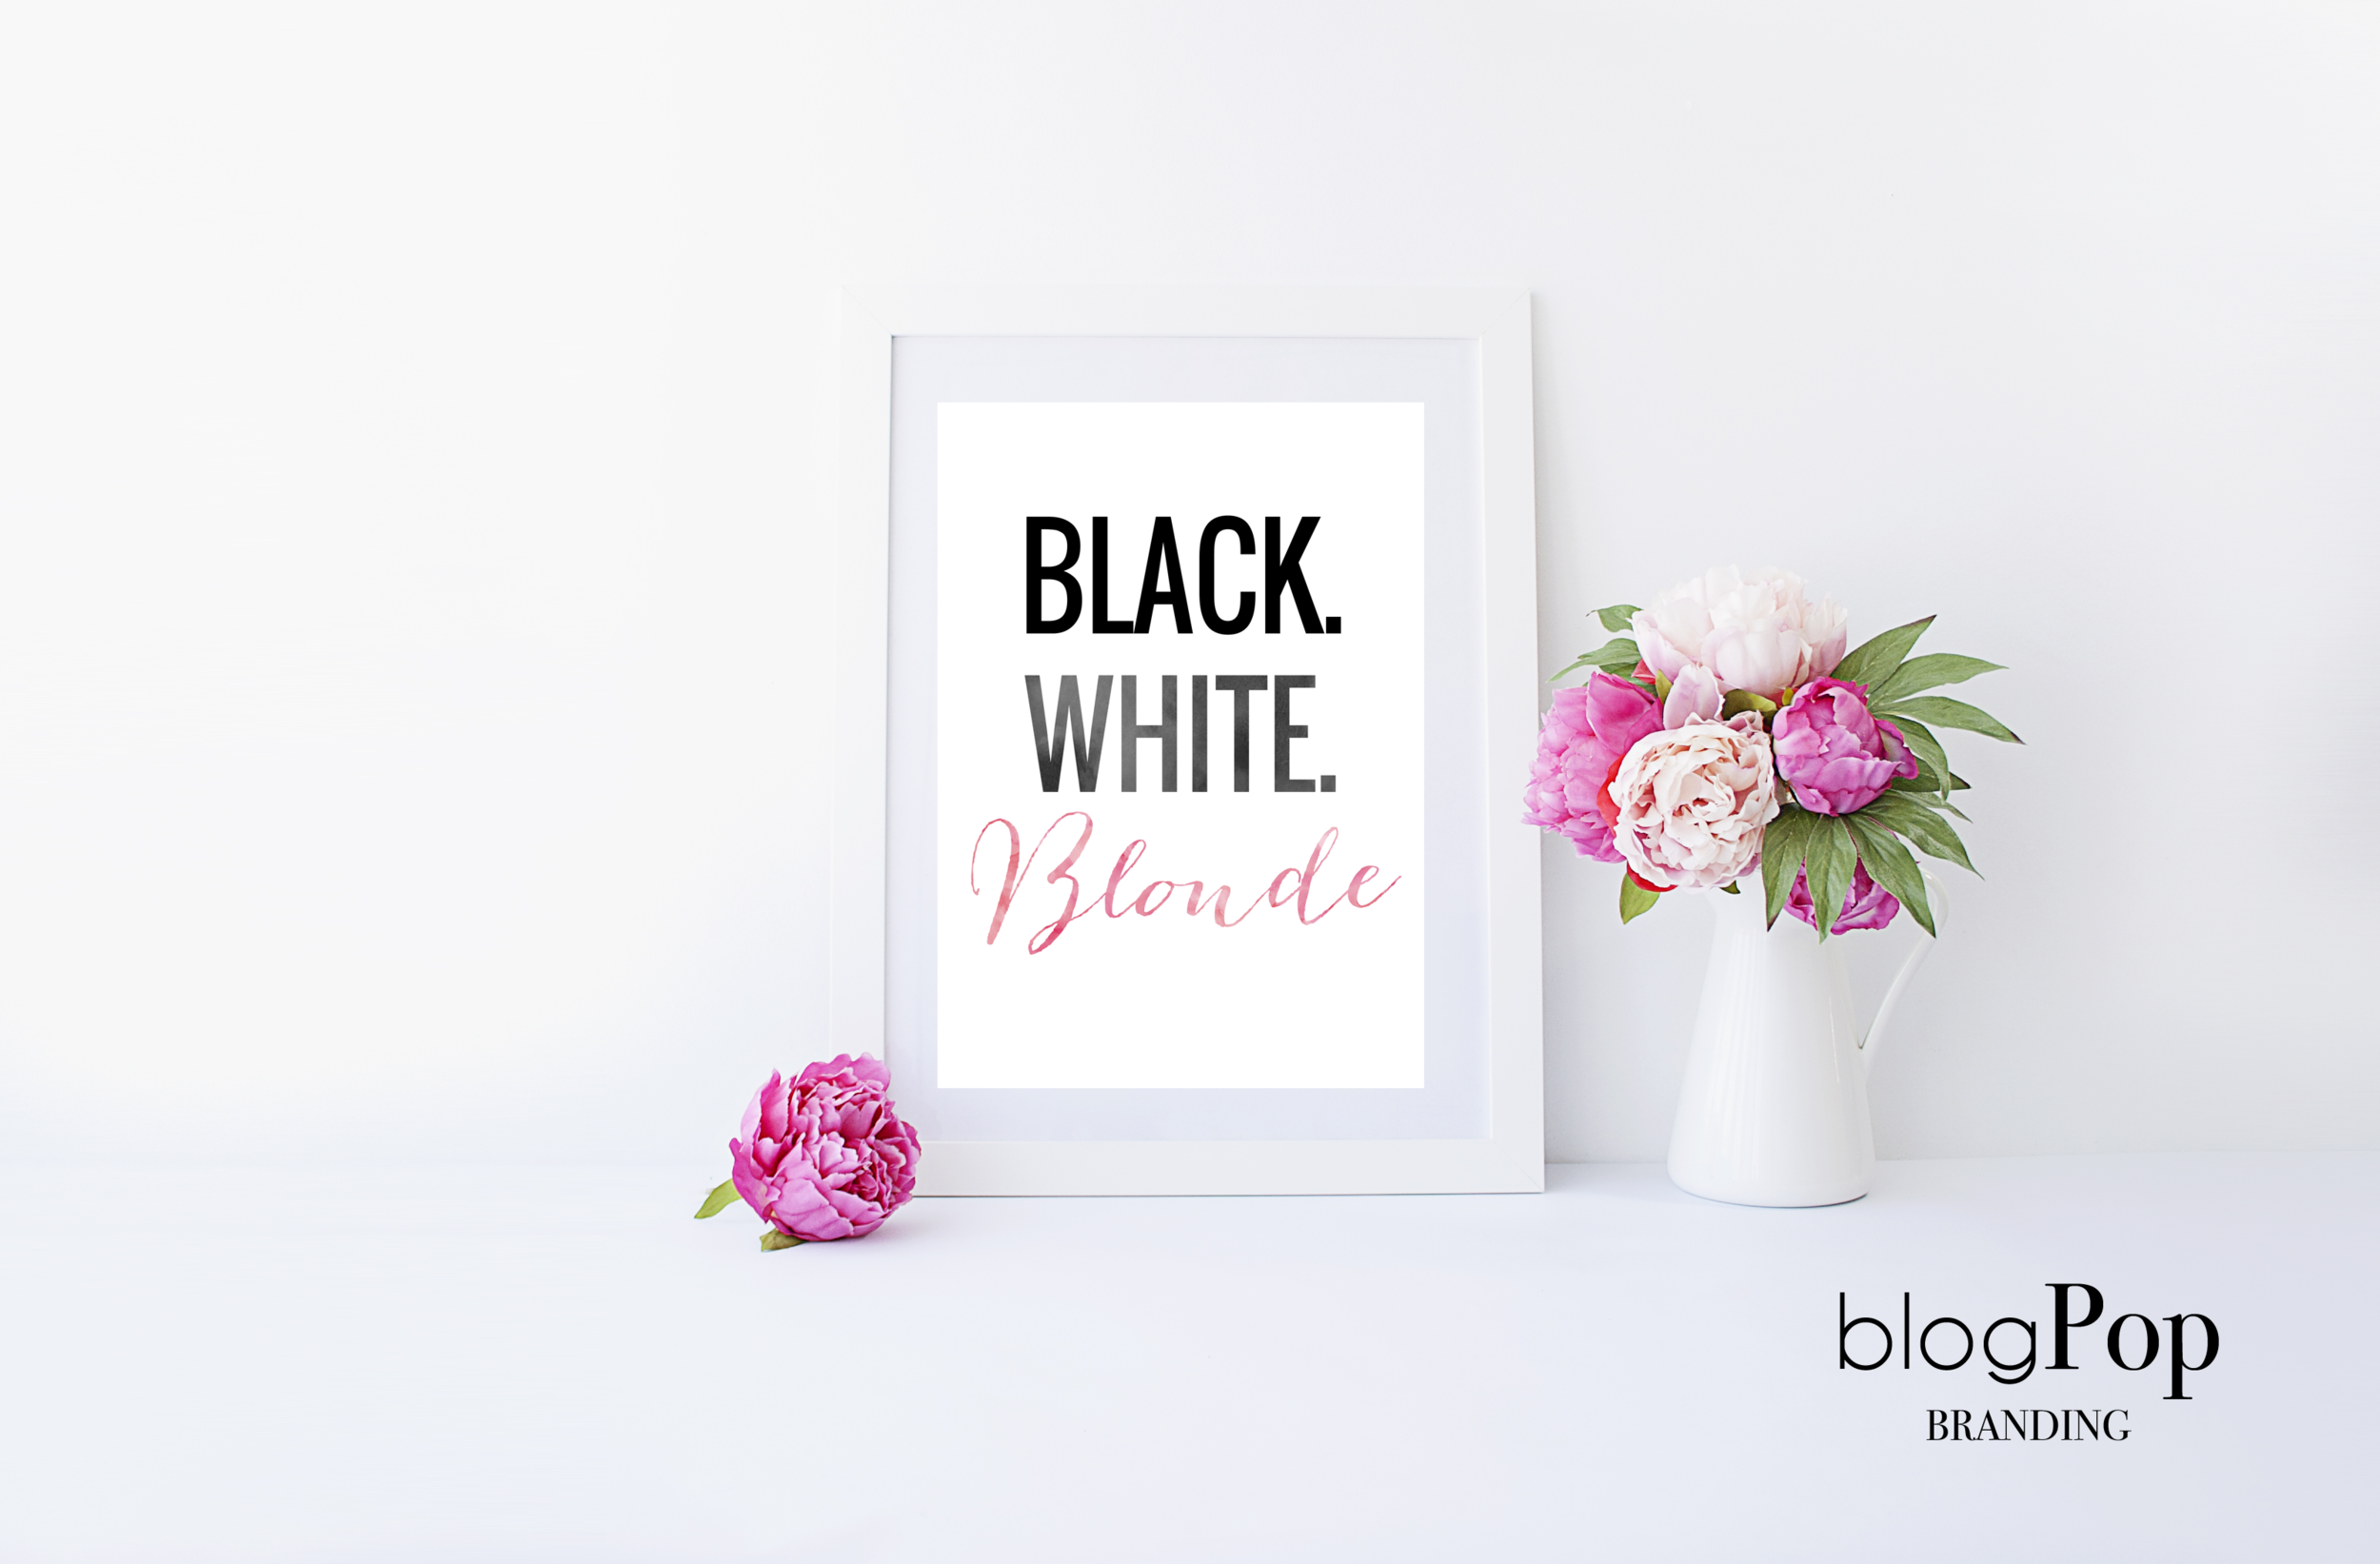 blogpop-branding-black-white-blonde-office-print-alexa-jean-brown